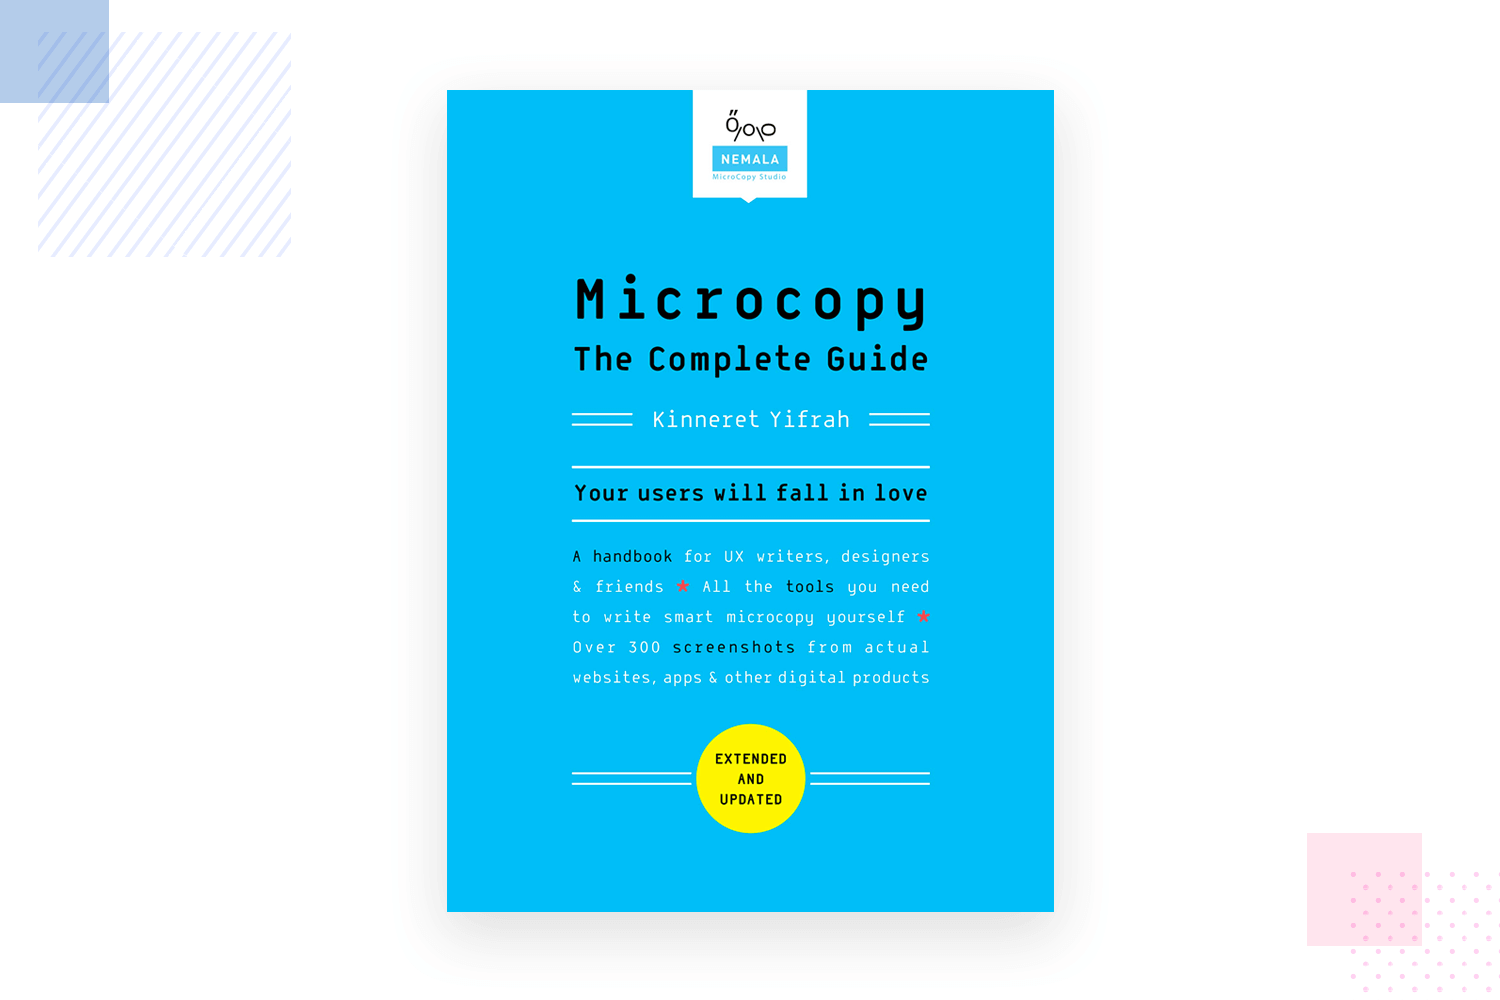 Microcopy: the complete guide - ux writing book